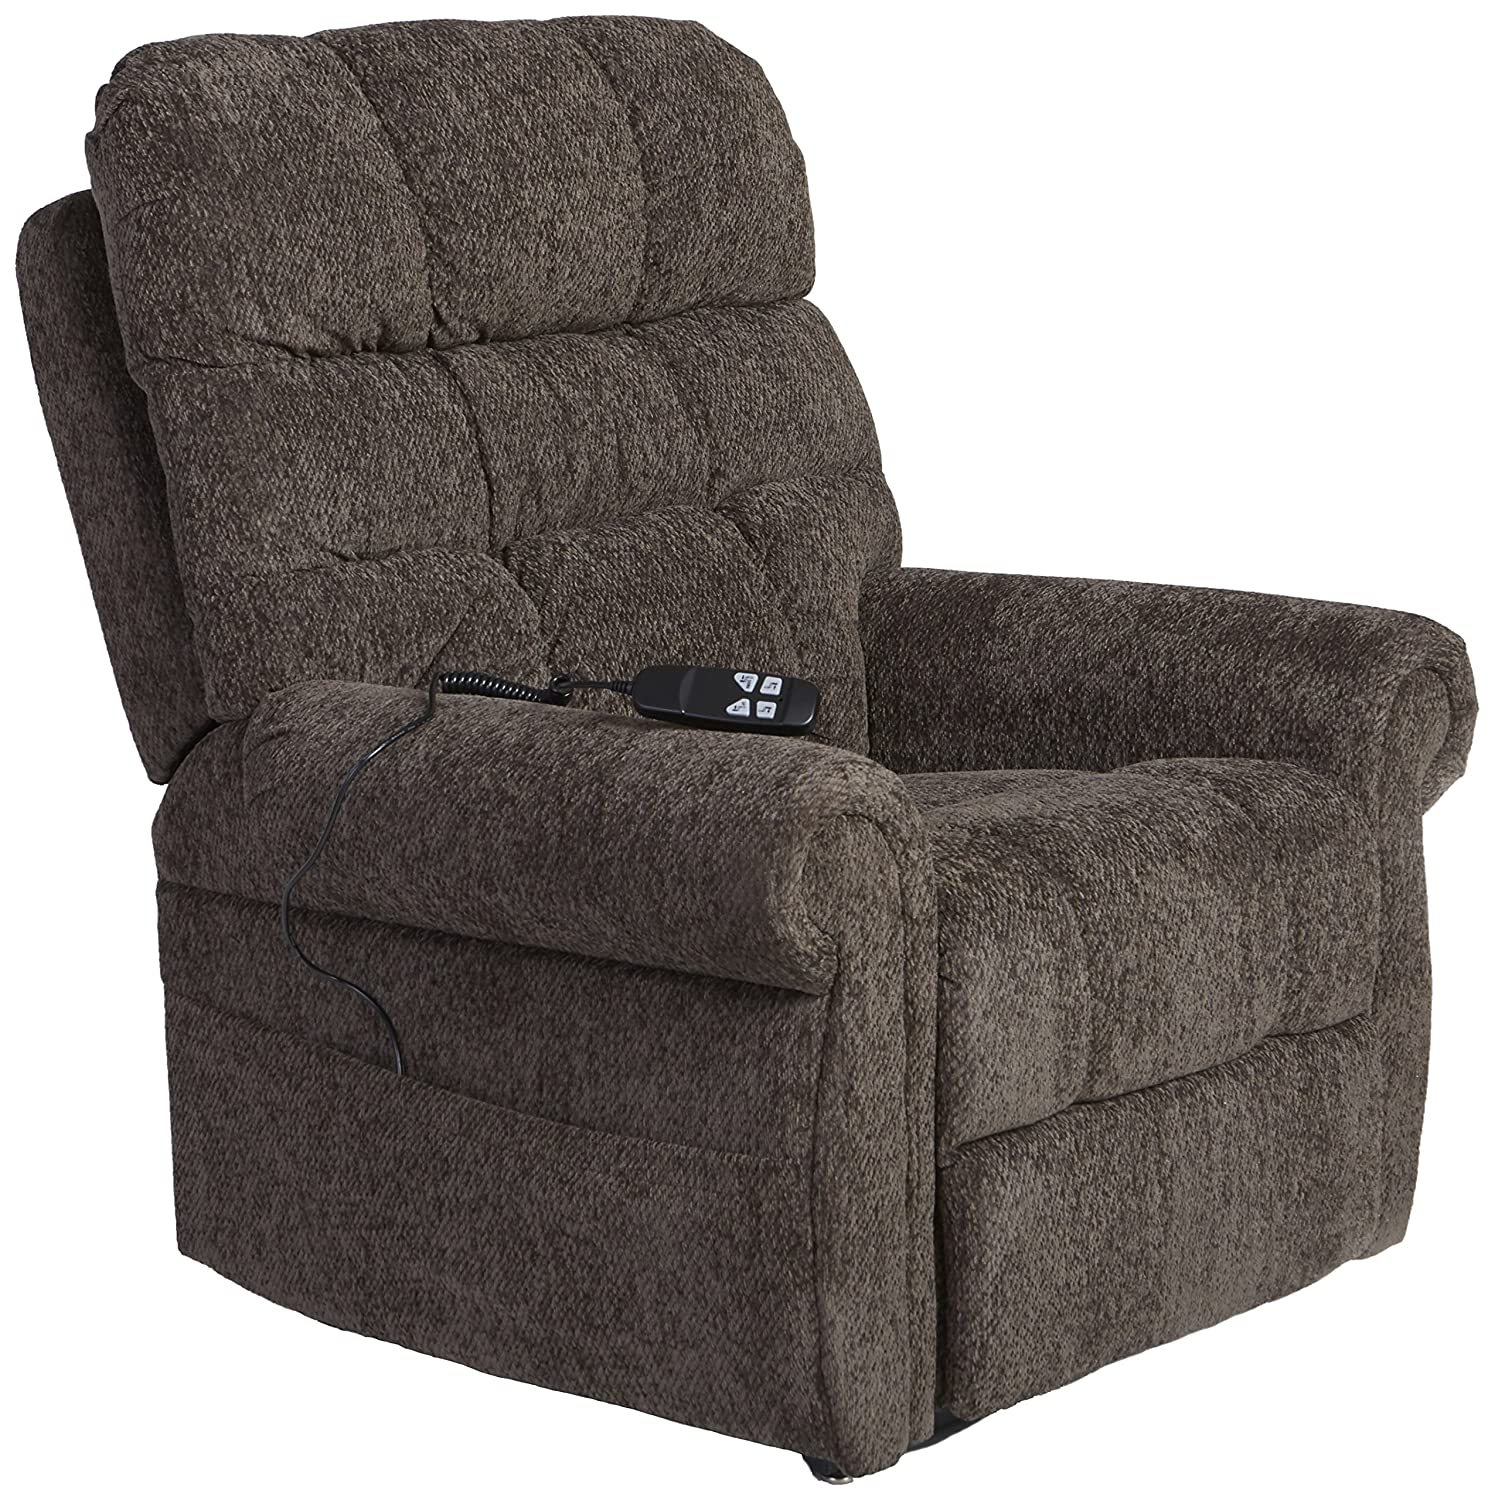 Amazon com ashley furniture signature design ernestine power lift recliner dual motor design polyester upholstery contemporary slate kitchen